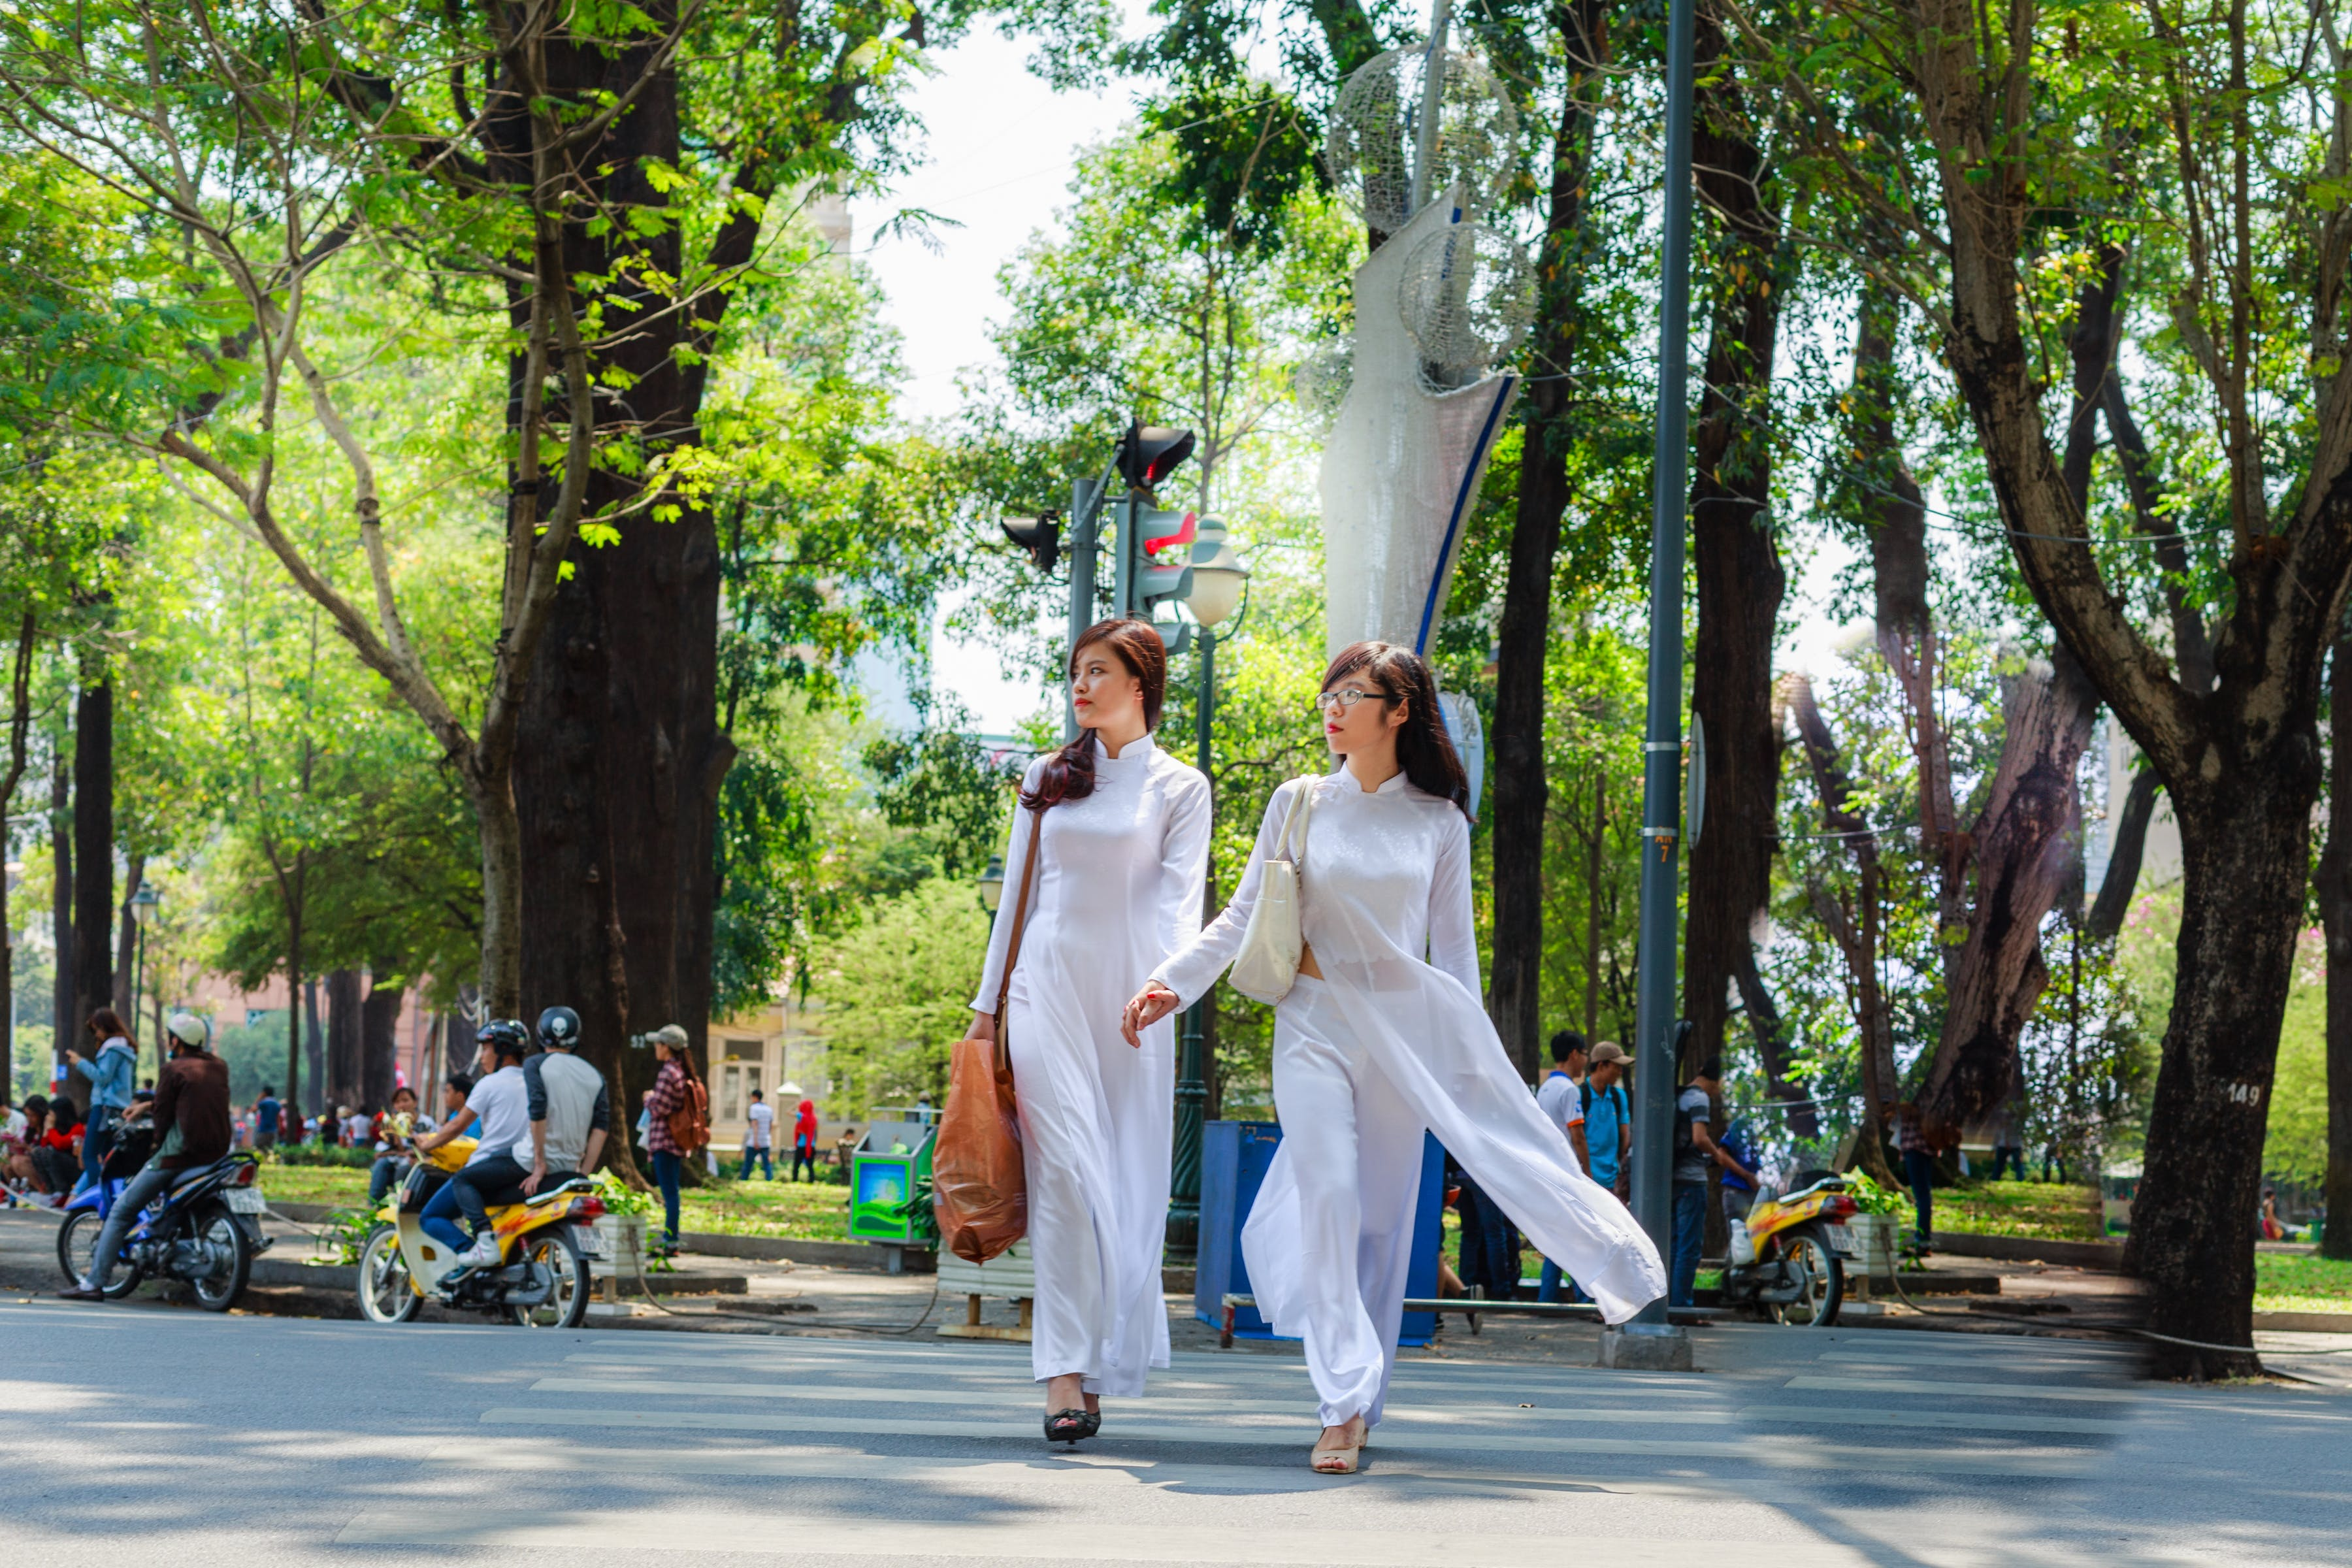 Photo of Two Women In White Outfits Holding Hands While Crossing the Street